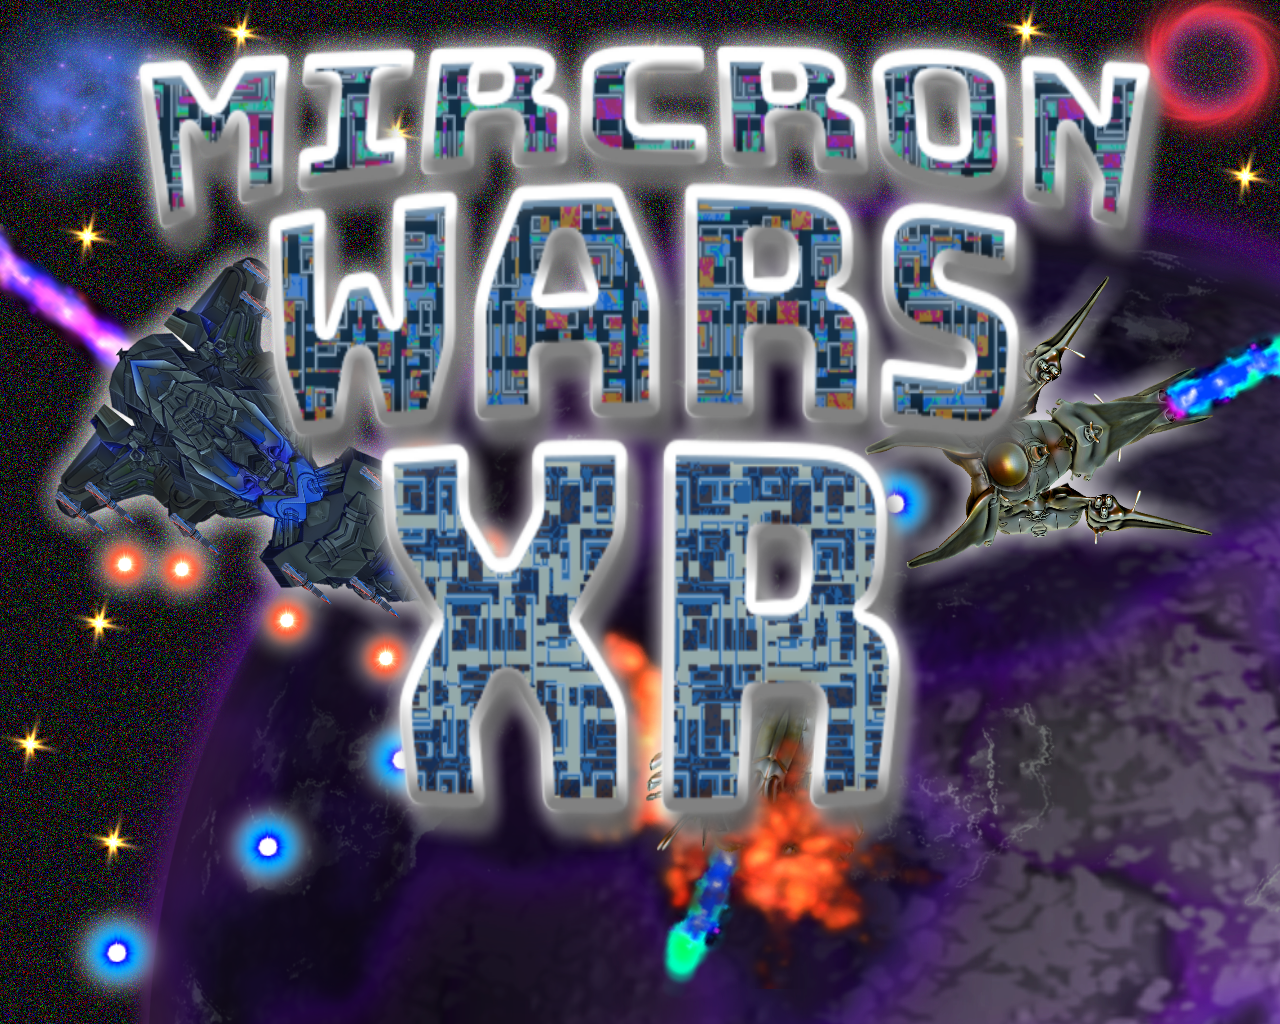 Mircron Wars XR